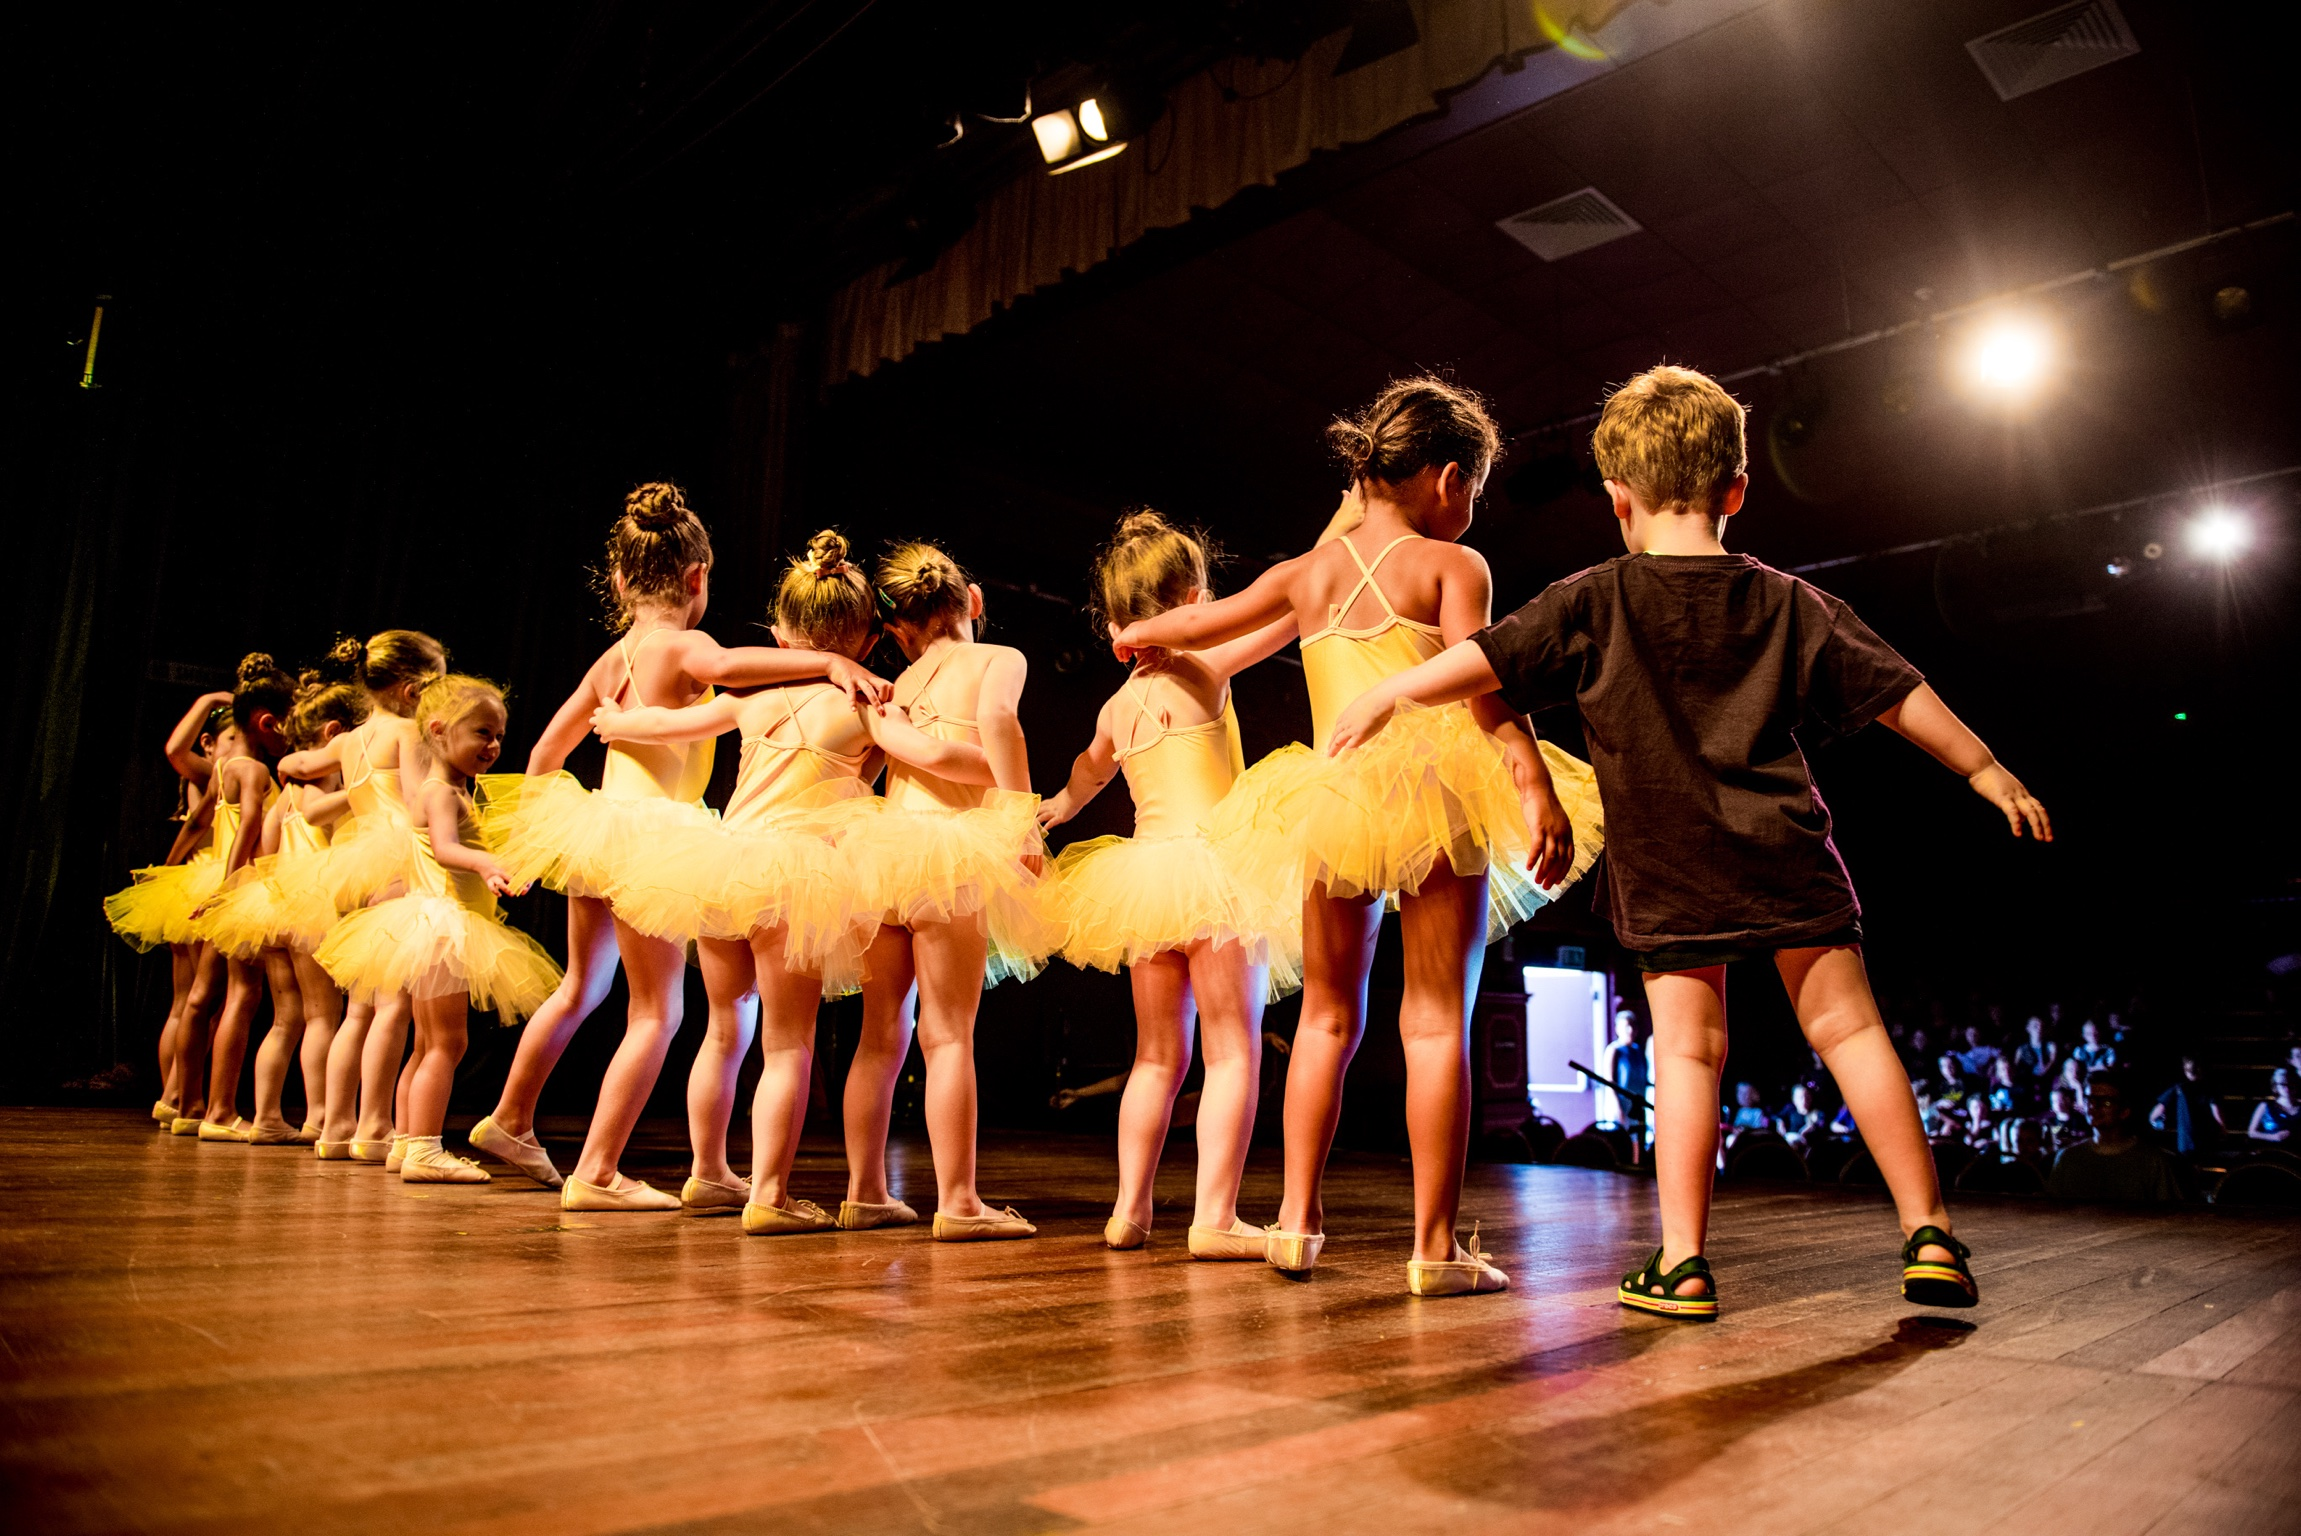 Ballet - We follow the RAD ballet syllabus and graded exams are offered each year but are not compulsory.Ballet is a wonderful discipline that really helps develop a strong foundation in dance that also teaches skills that children carry to adulthood.